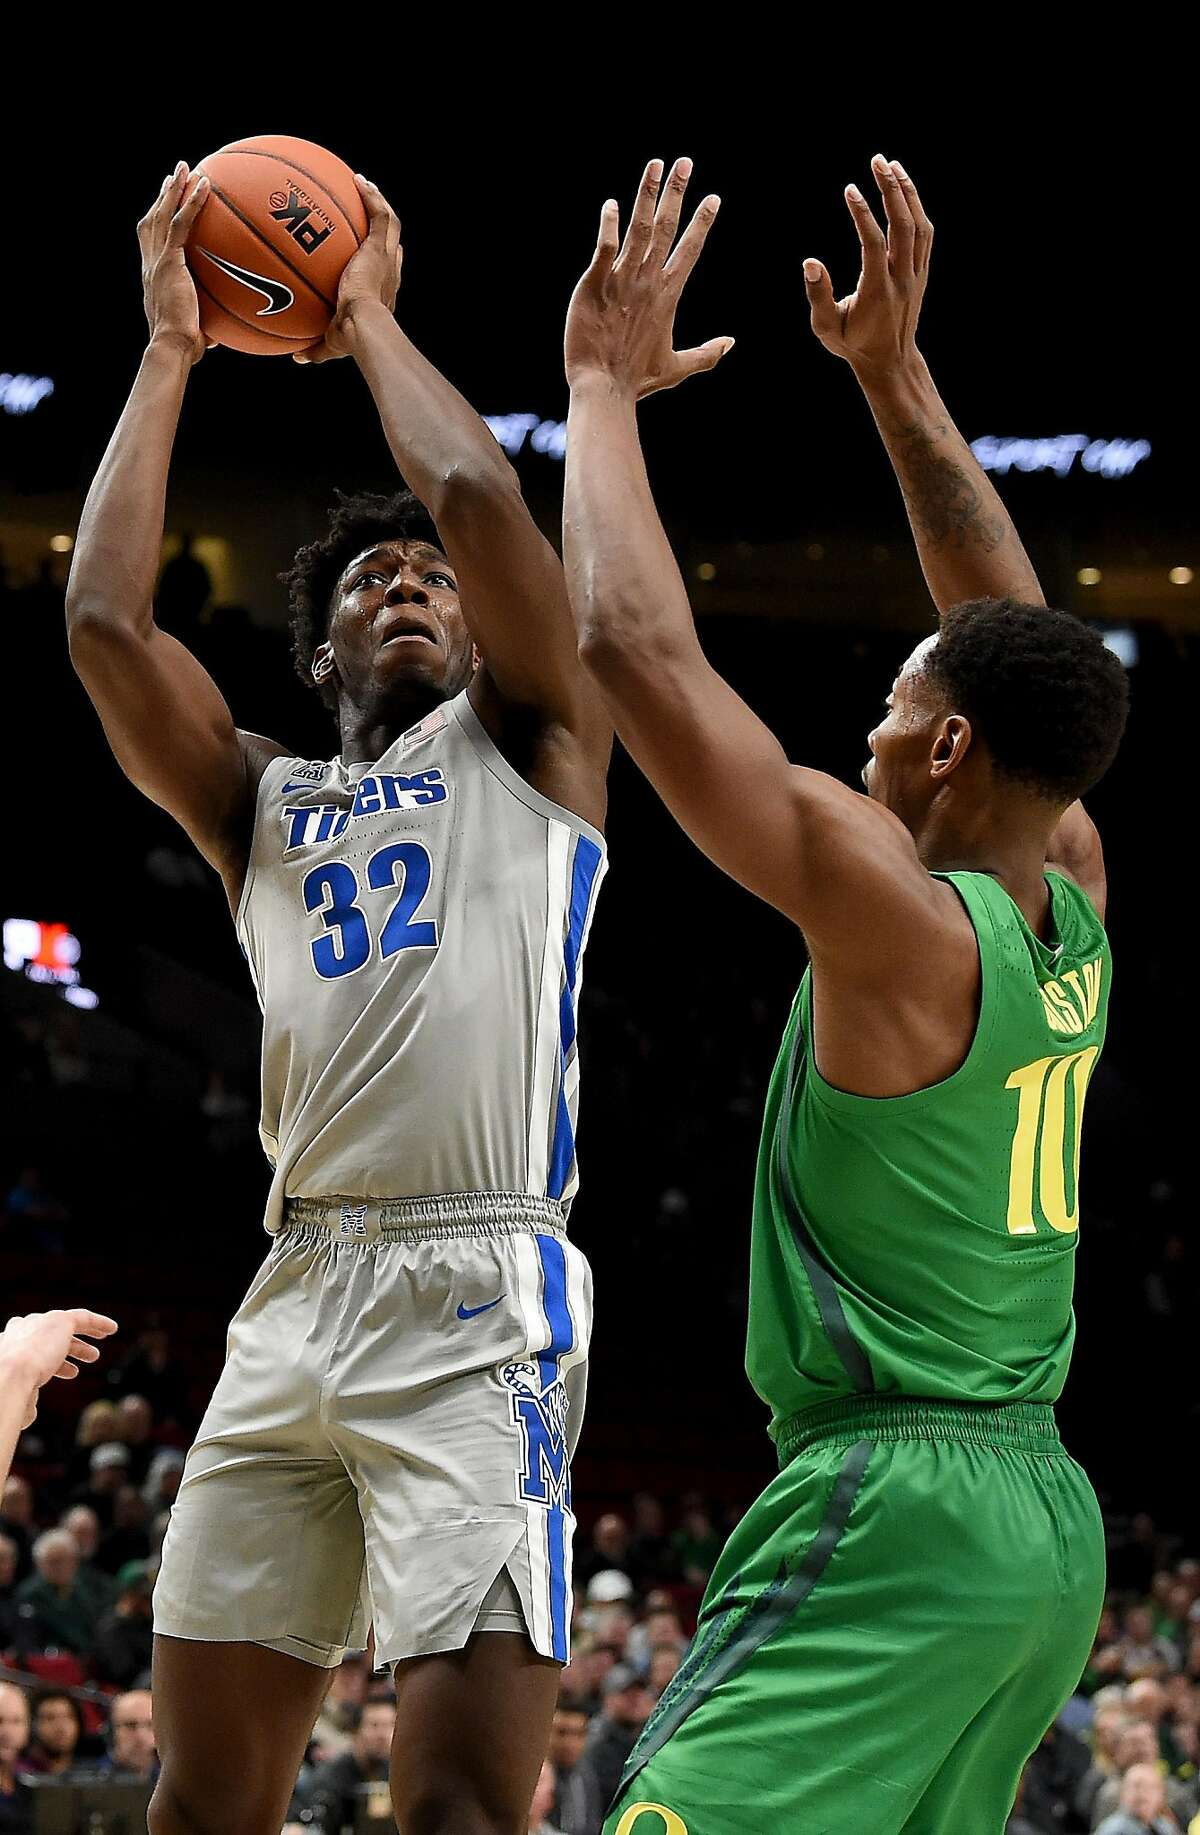 James Wiseman #32 of the Memphis Tigers shoots the ball over Shakur Juiston #10 of the Oregon Ducks during the first half of the game at Moda Center on November 12, 2019 in Portland, Oregon. The Golden State Warriors selected Wiseman with the number two pick in the NBA Draft on Wednesday, Nov. 18, 2020.